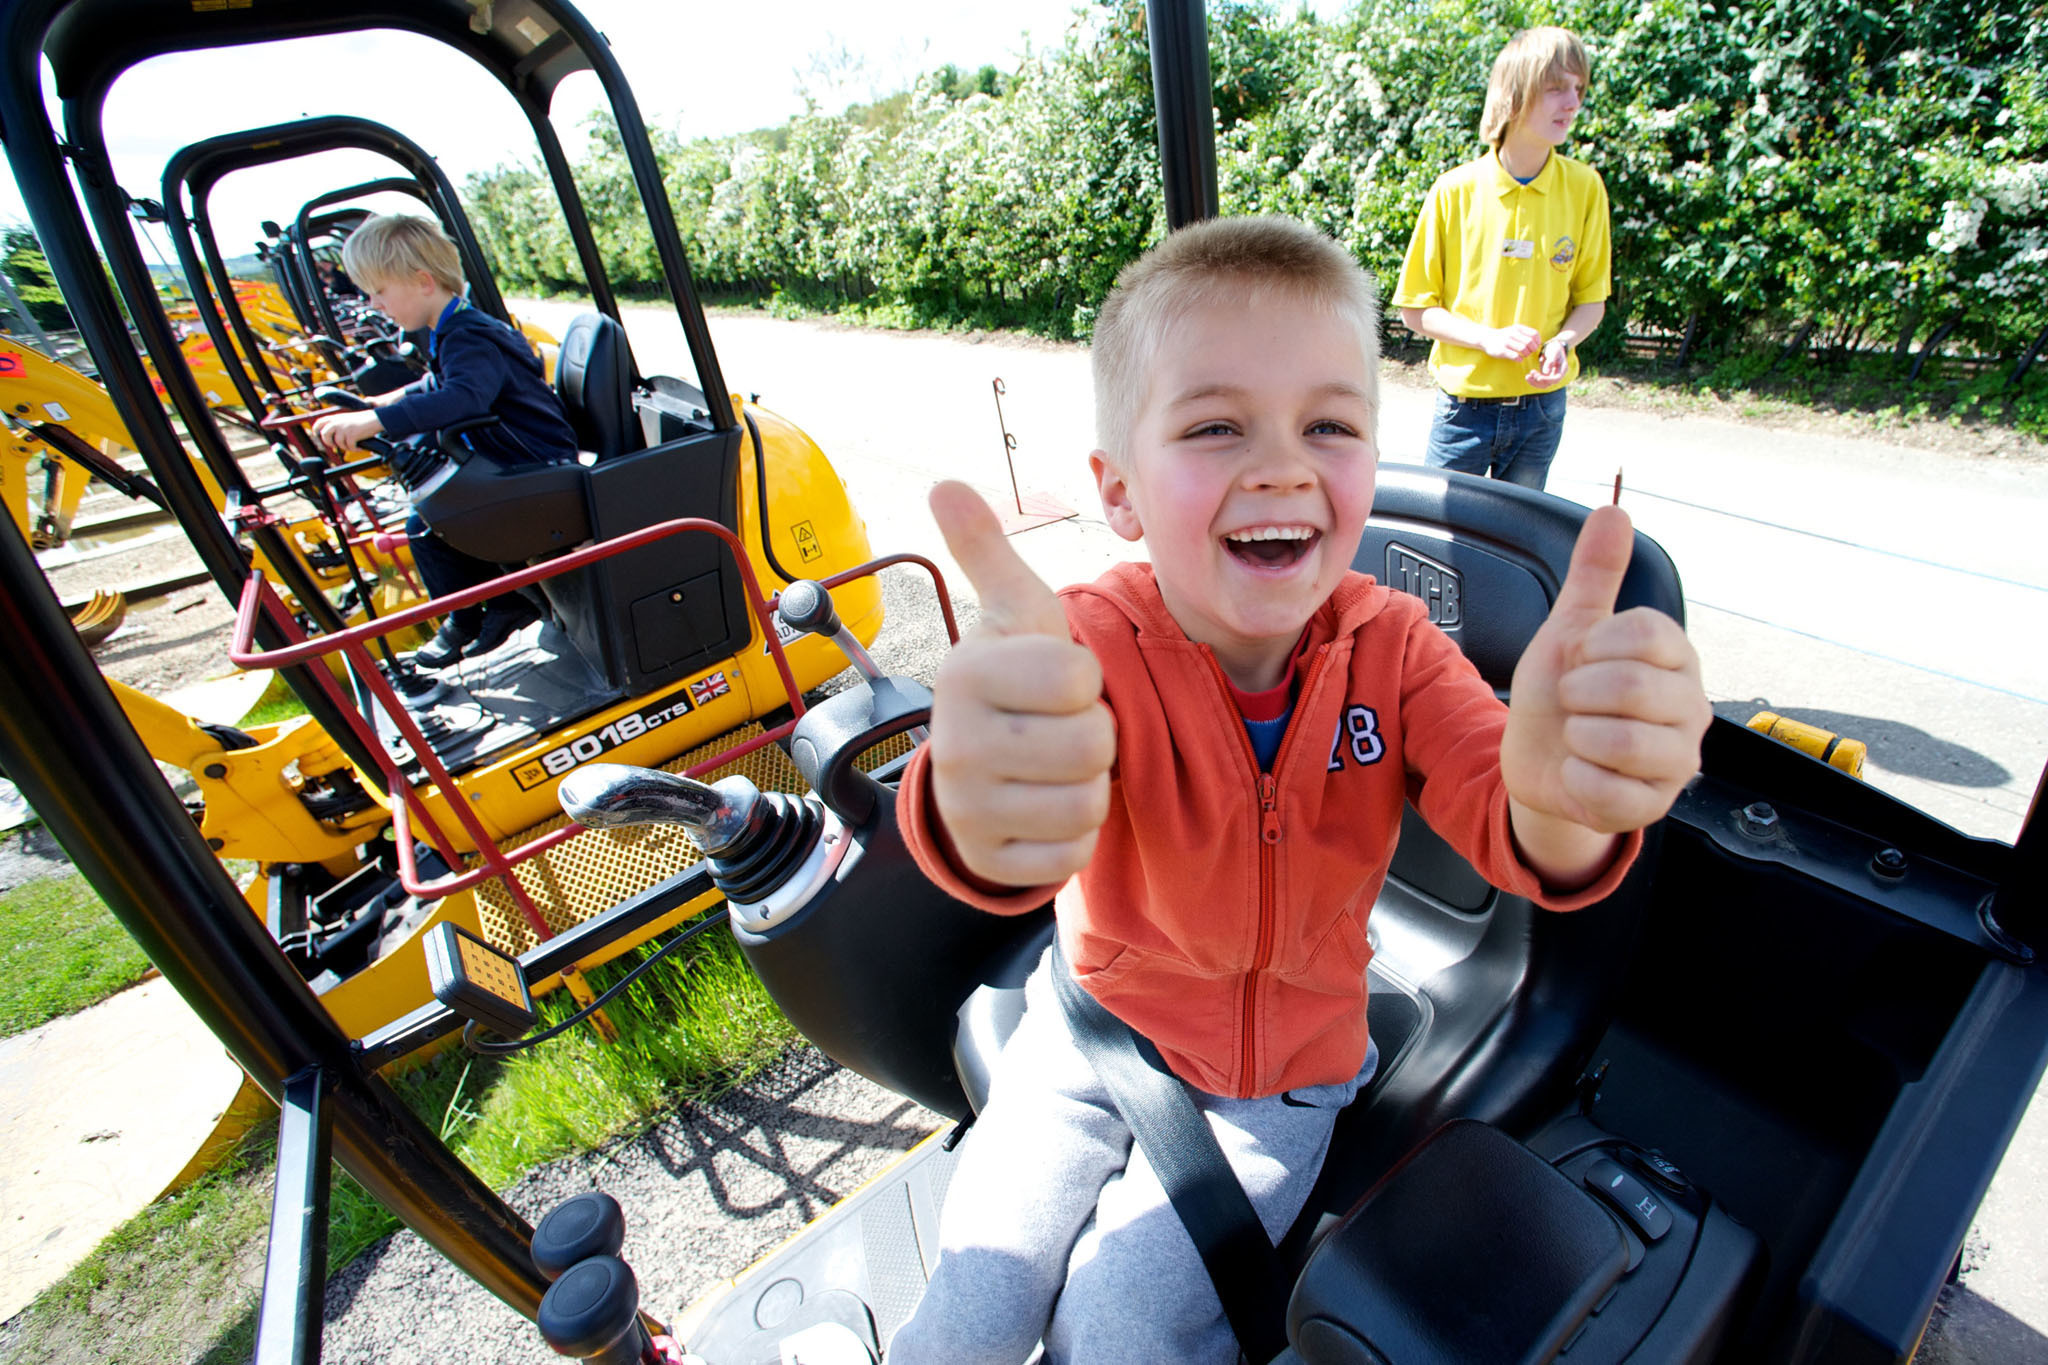 diggerland-usa-mini-diggers-treasure-001.jpg